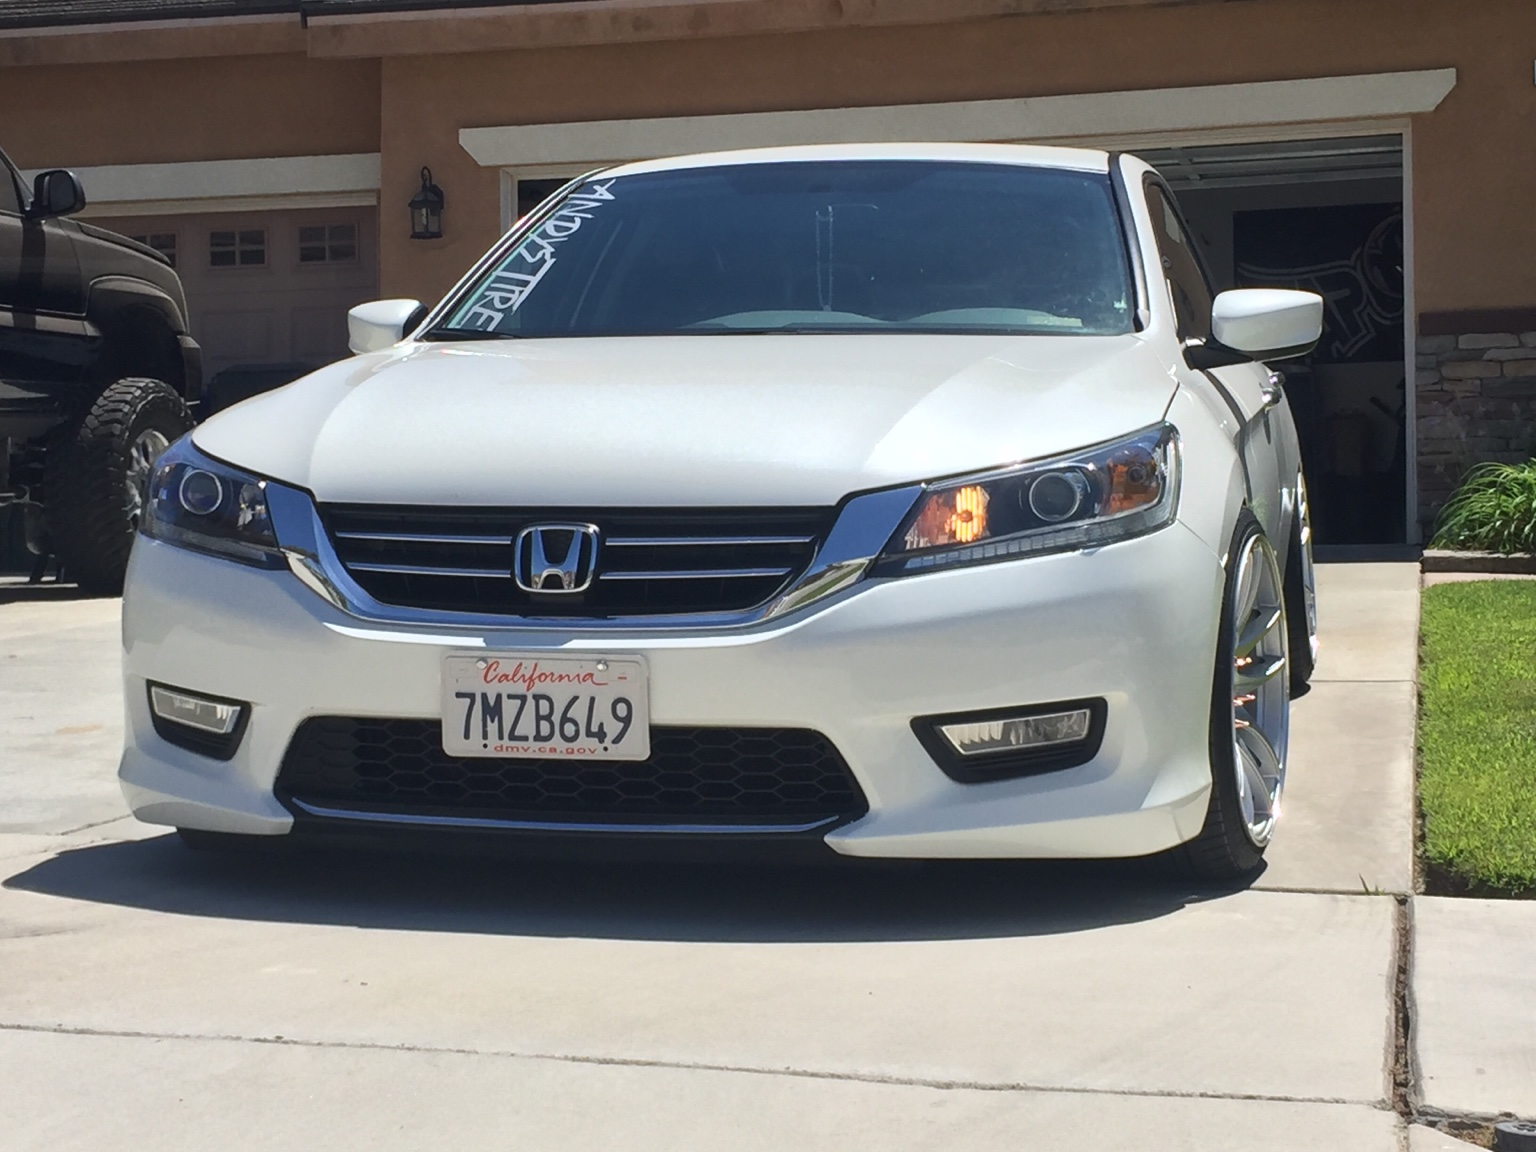 9th gen accord wheel thread  pictures  questions  general